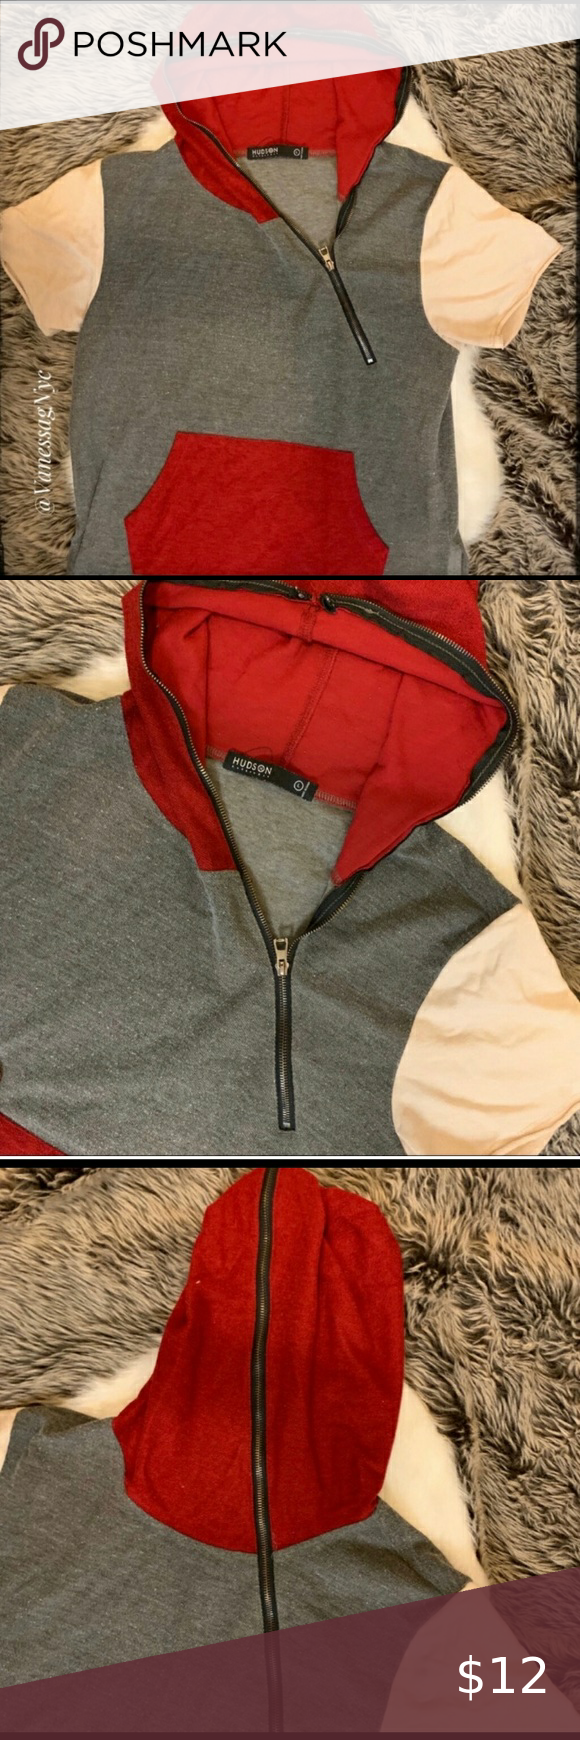 Hudson Outerwear T Shirt Hoodie Red Grey Large Red Hoodie Hoodie Shirt Outerwear [ 1740 x 580 Pixel ]